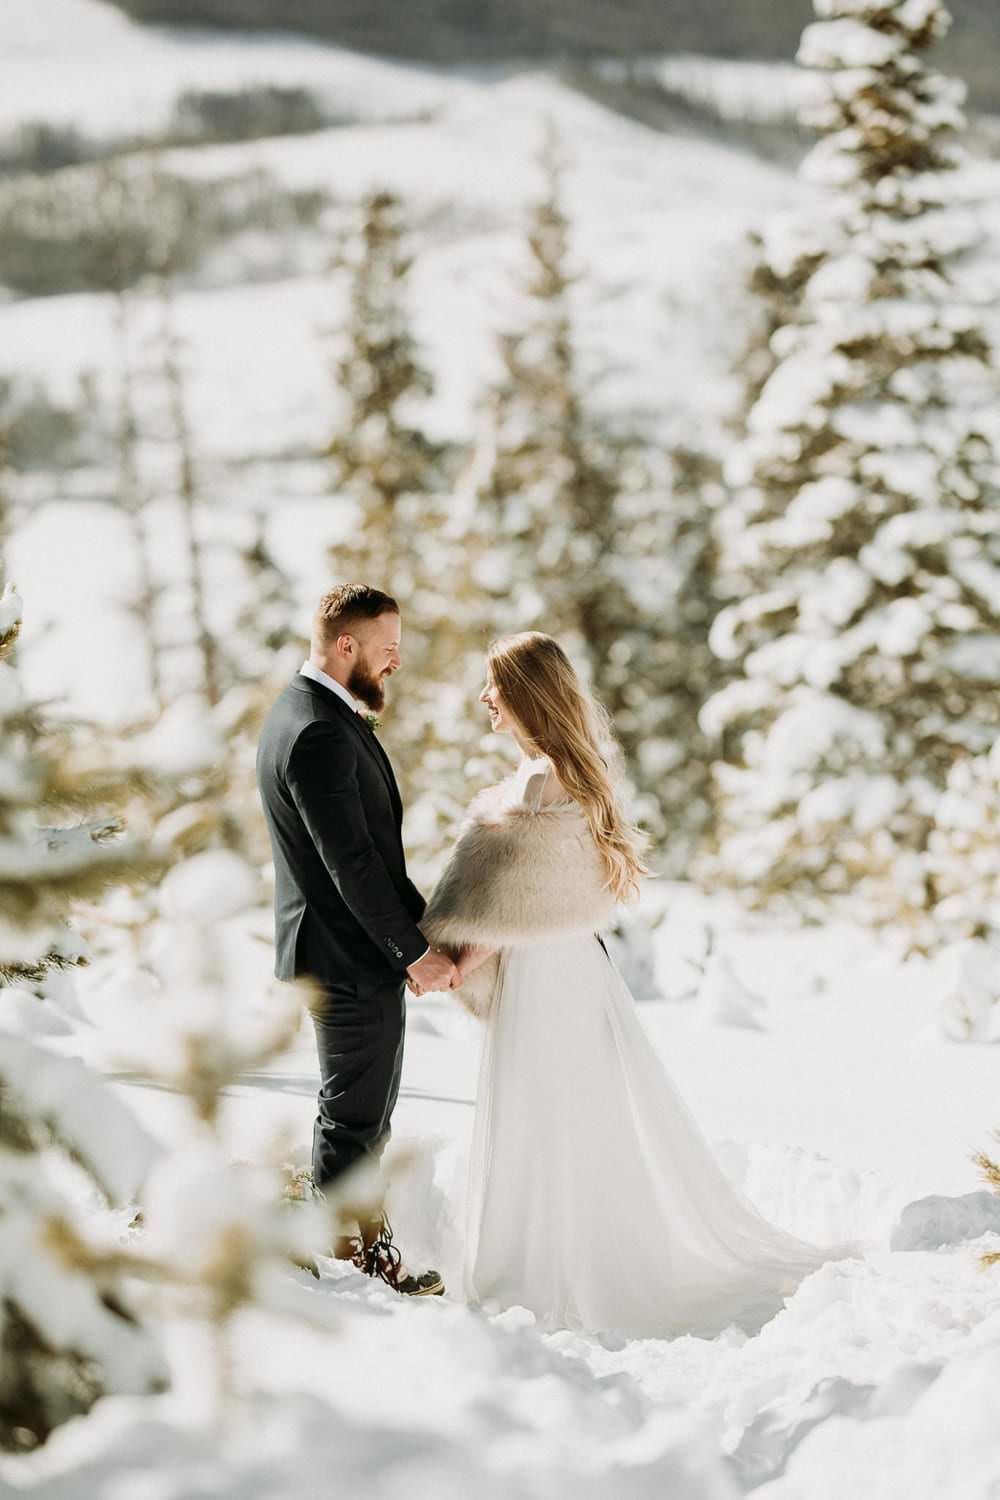 LOVELAND PASS ELOPEMENT | CONTINENTAL DIVIDE ELOPEMENT|COLORADO MOUNTAIN ELOPEMENT PHOTOGRAPHY | ROCKY MOUNTAIN ELOPEMENT |BRECKENRIDGE COLORADO ELOPEMENT|SAPPHIRE POINT OUTLOOK ELOPEMENT | SELF-SOLEMNIZING ELOPEMENT |ASHLEY + COLTON